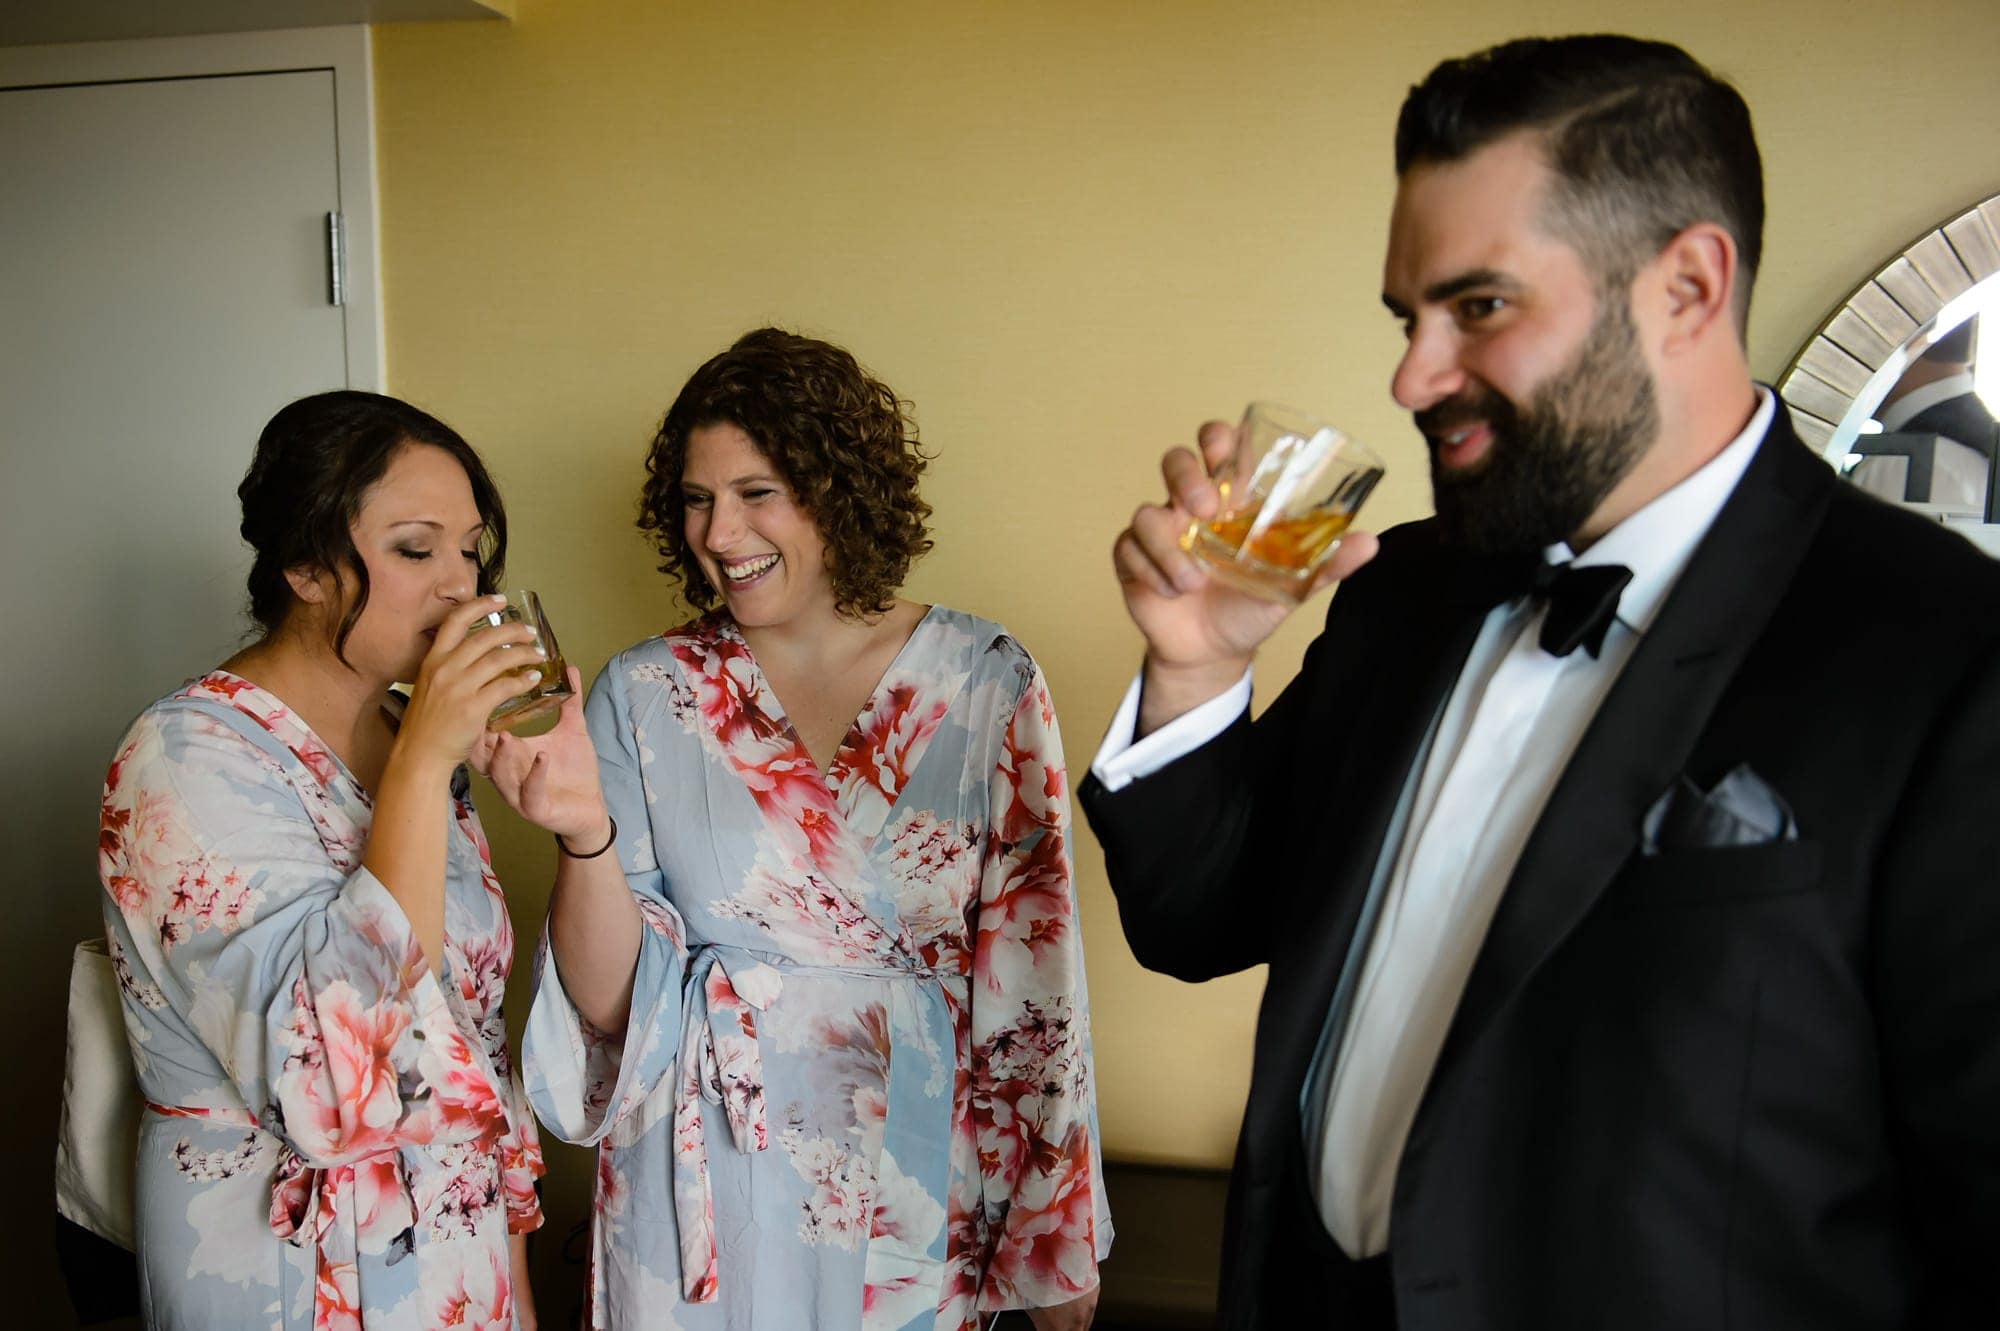 Bridesmaids in their robes share a toast of rye whiskey with the groom